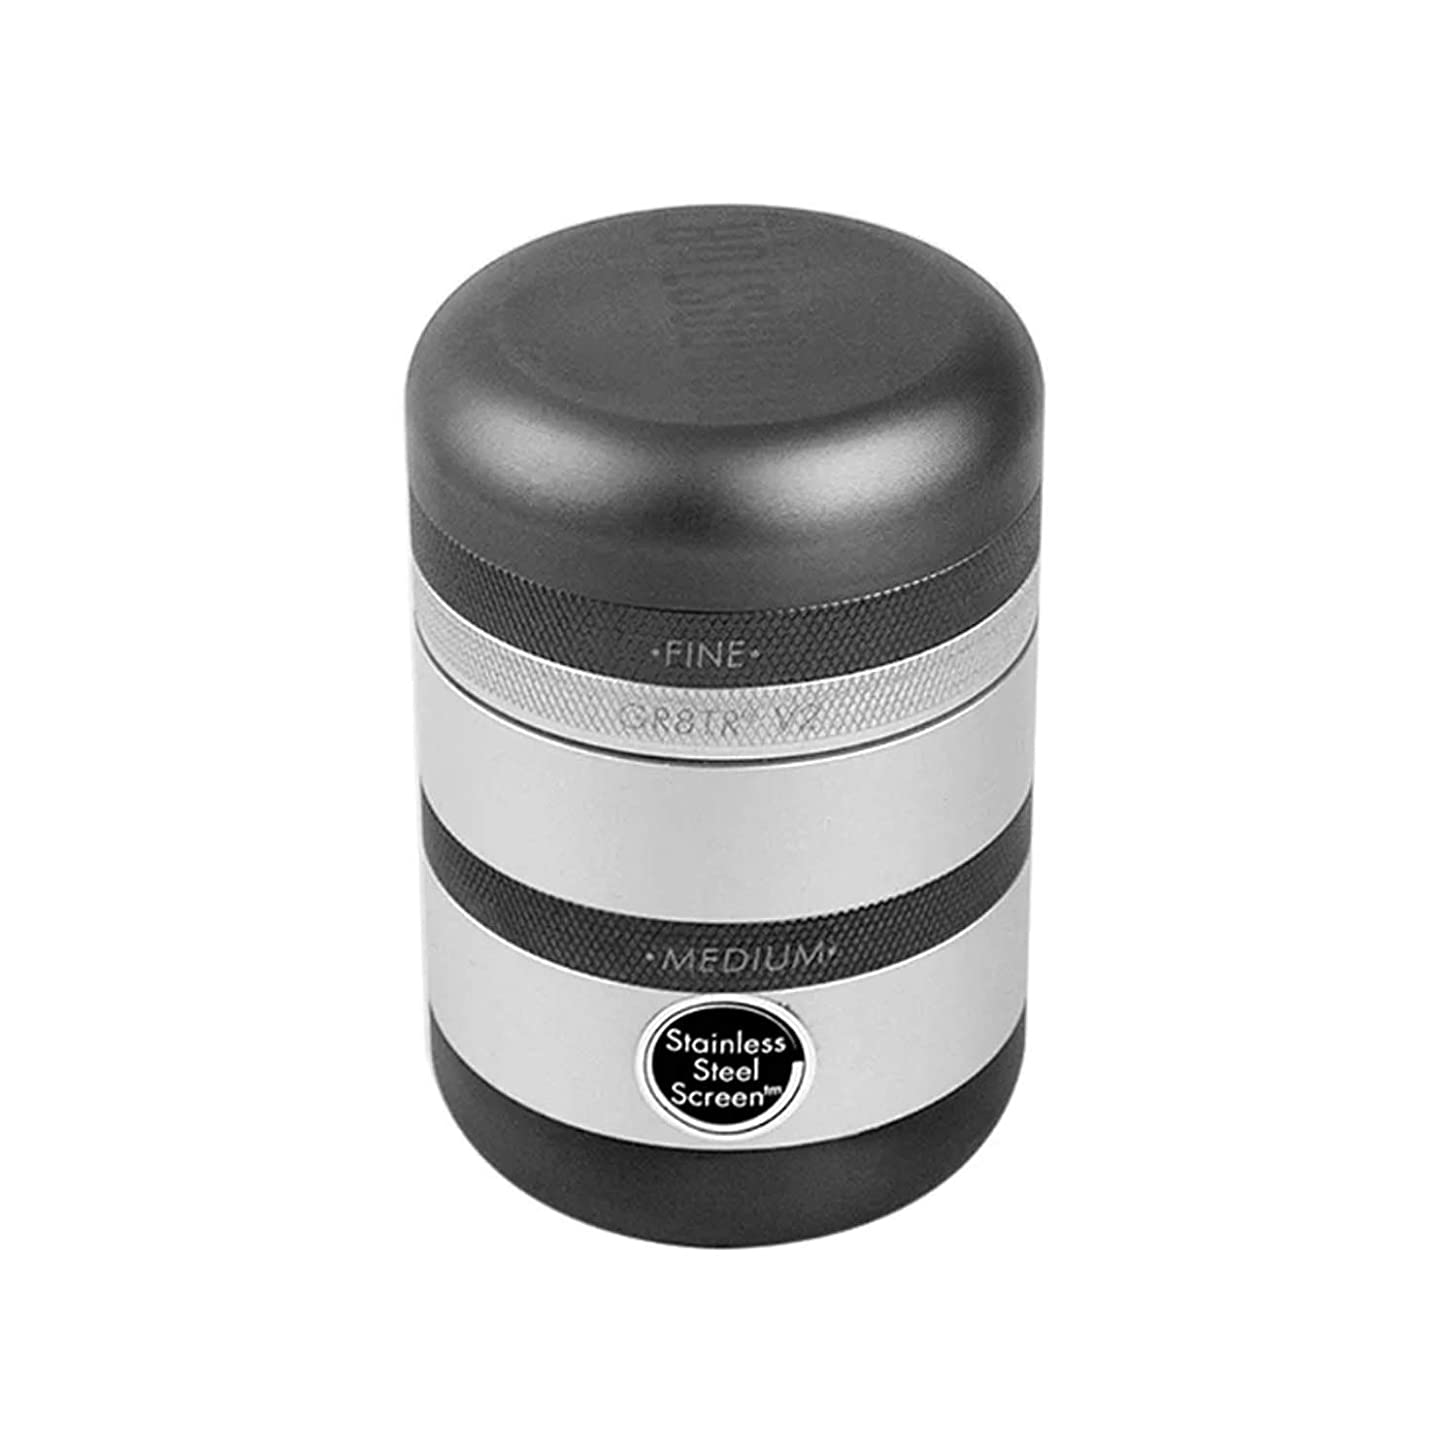 Kannast?r GR8TR V2 Grinder - Solid Body with Stainless Steel Easy Change Screen (Matte Silver)